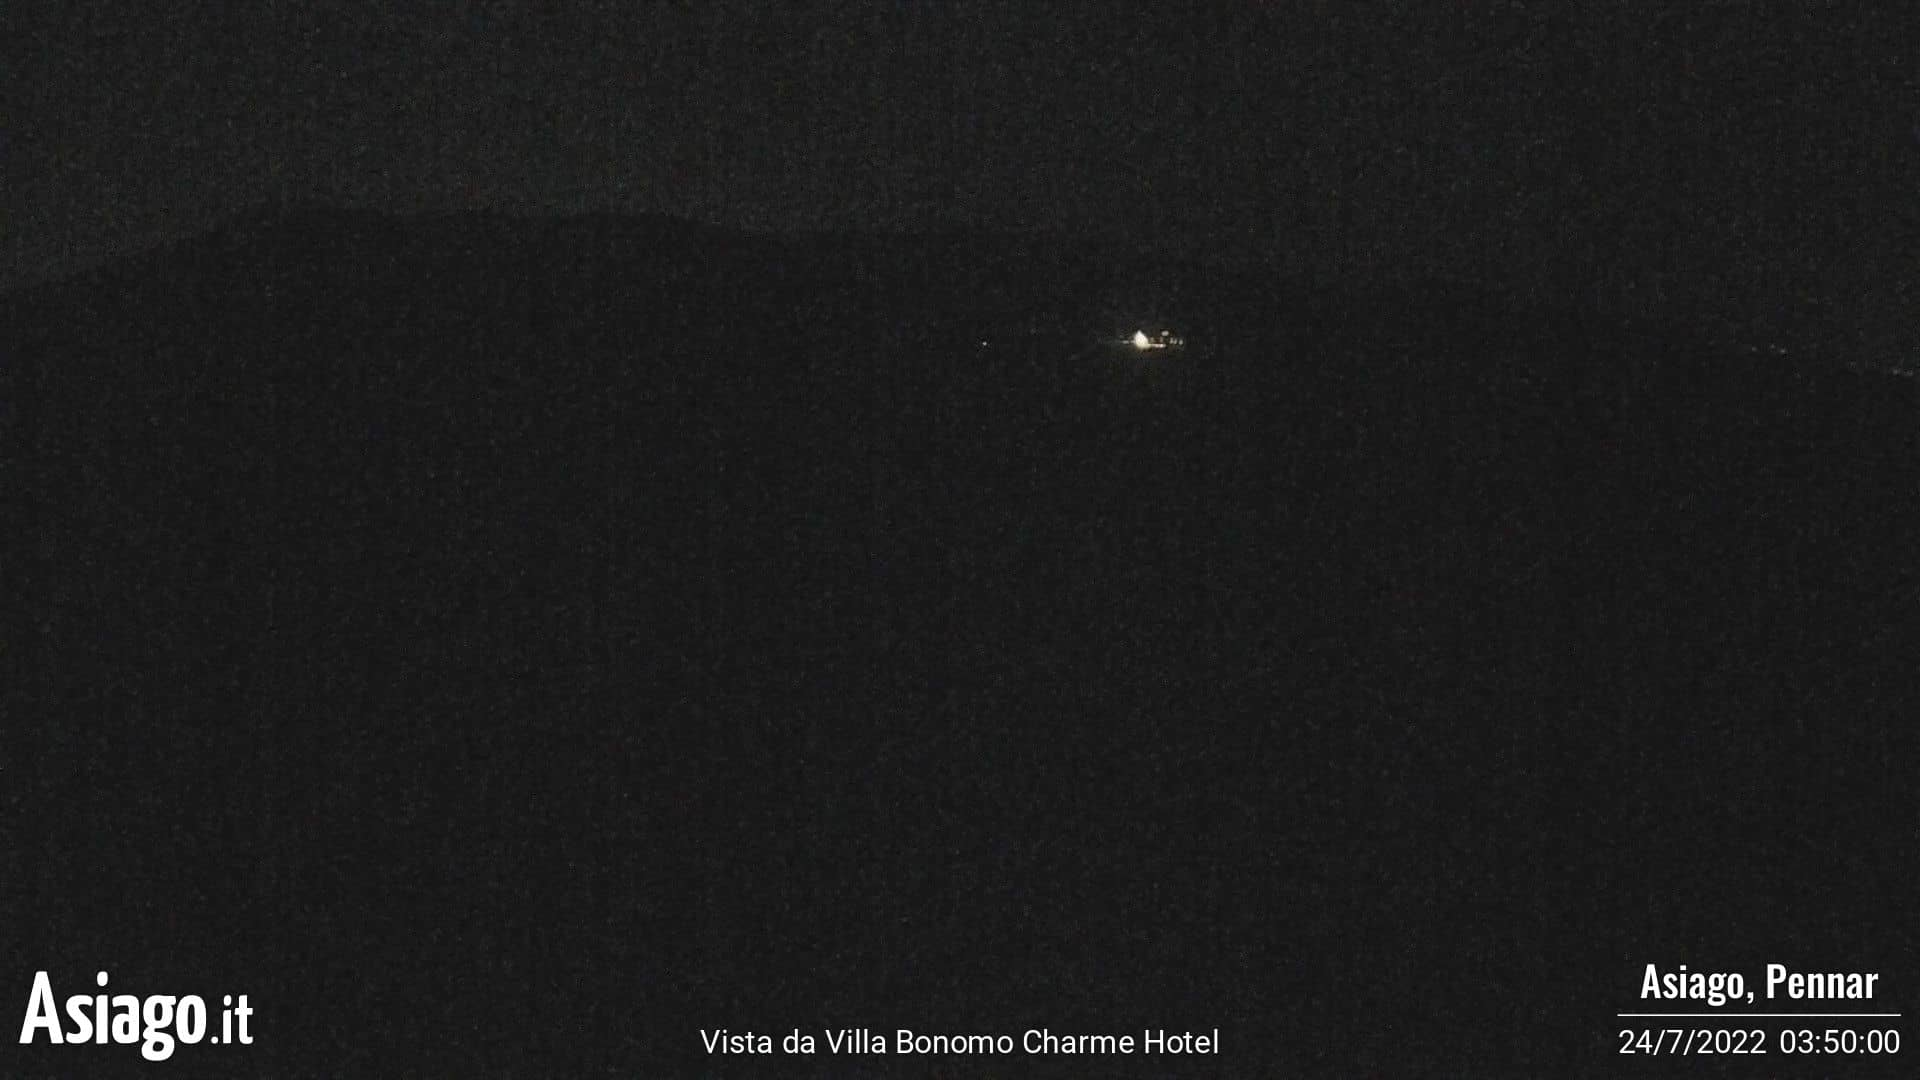 Live webcam from the Golf Hotel Villa Bonomo